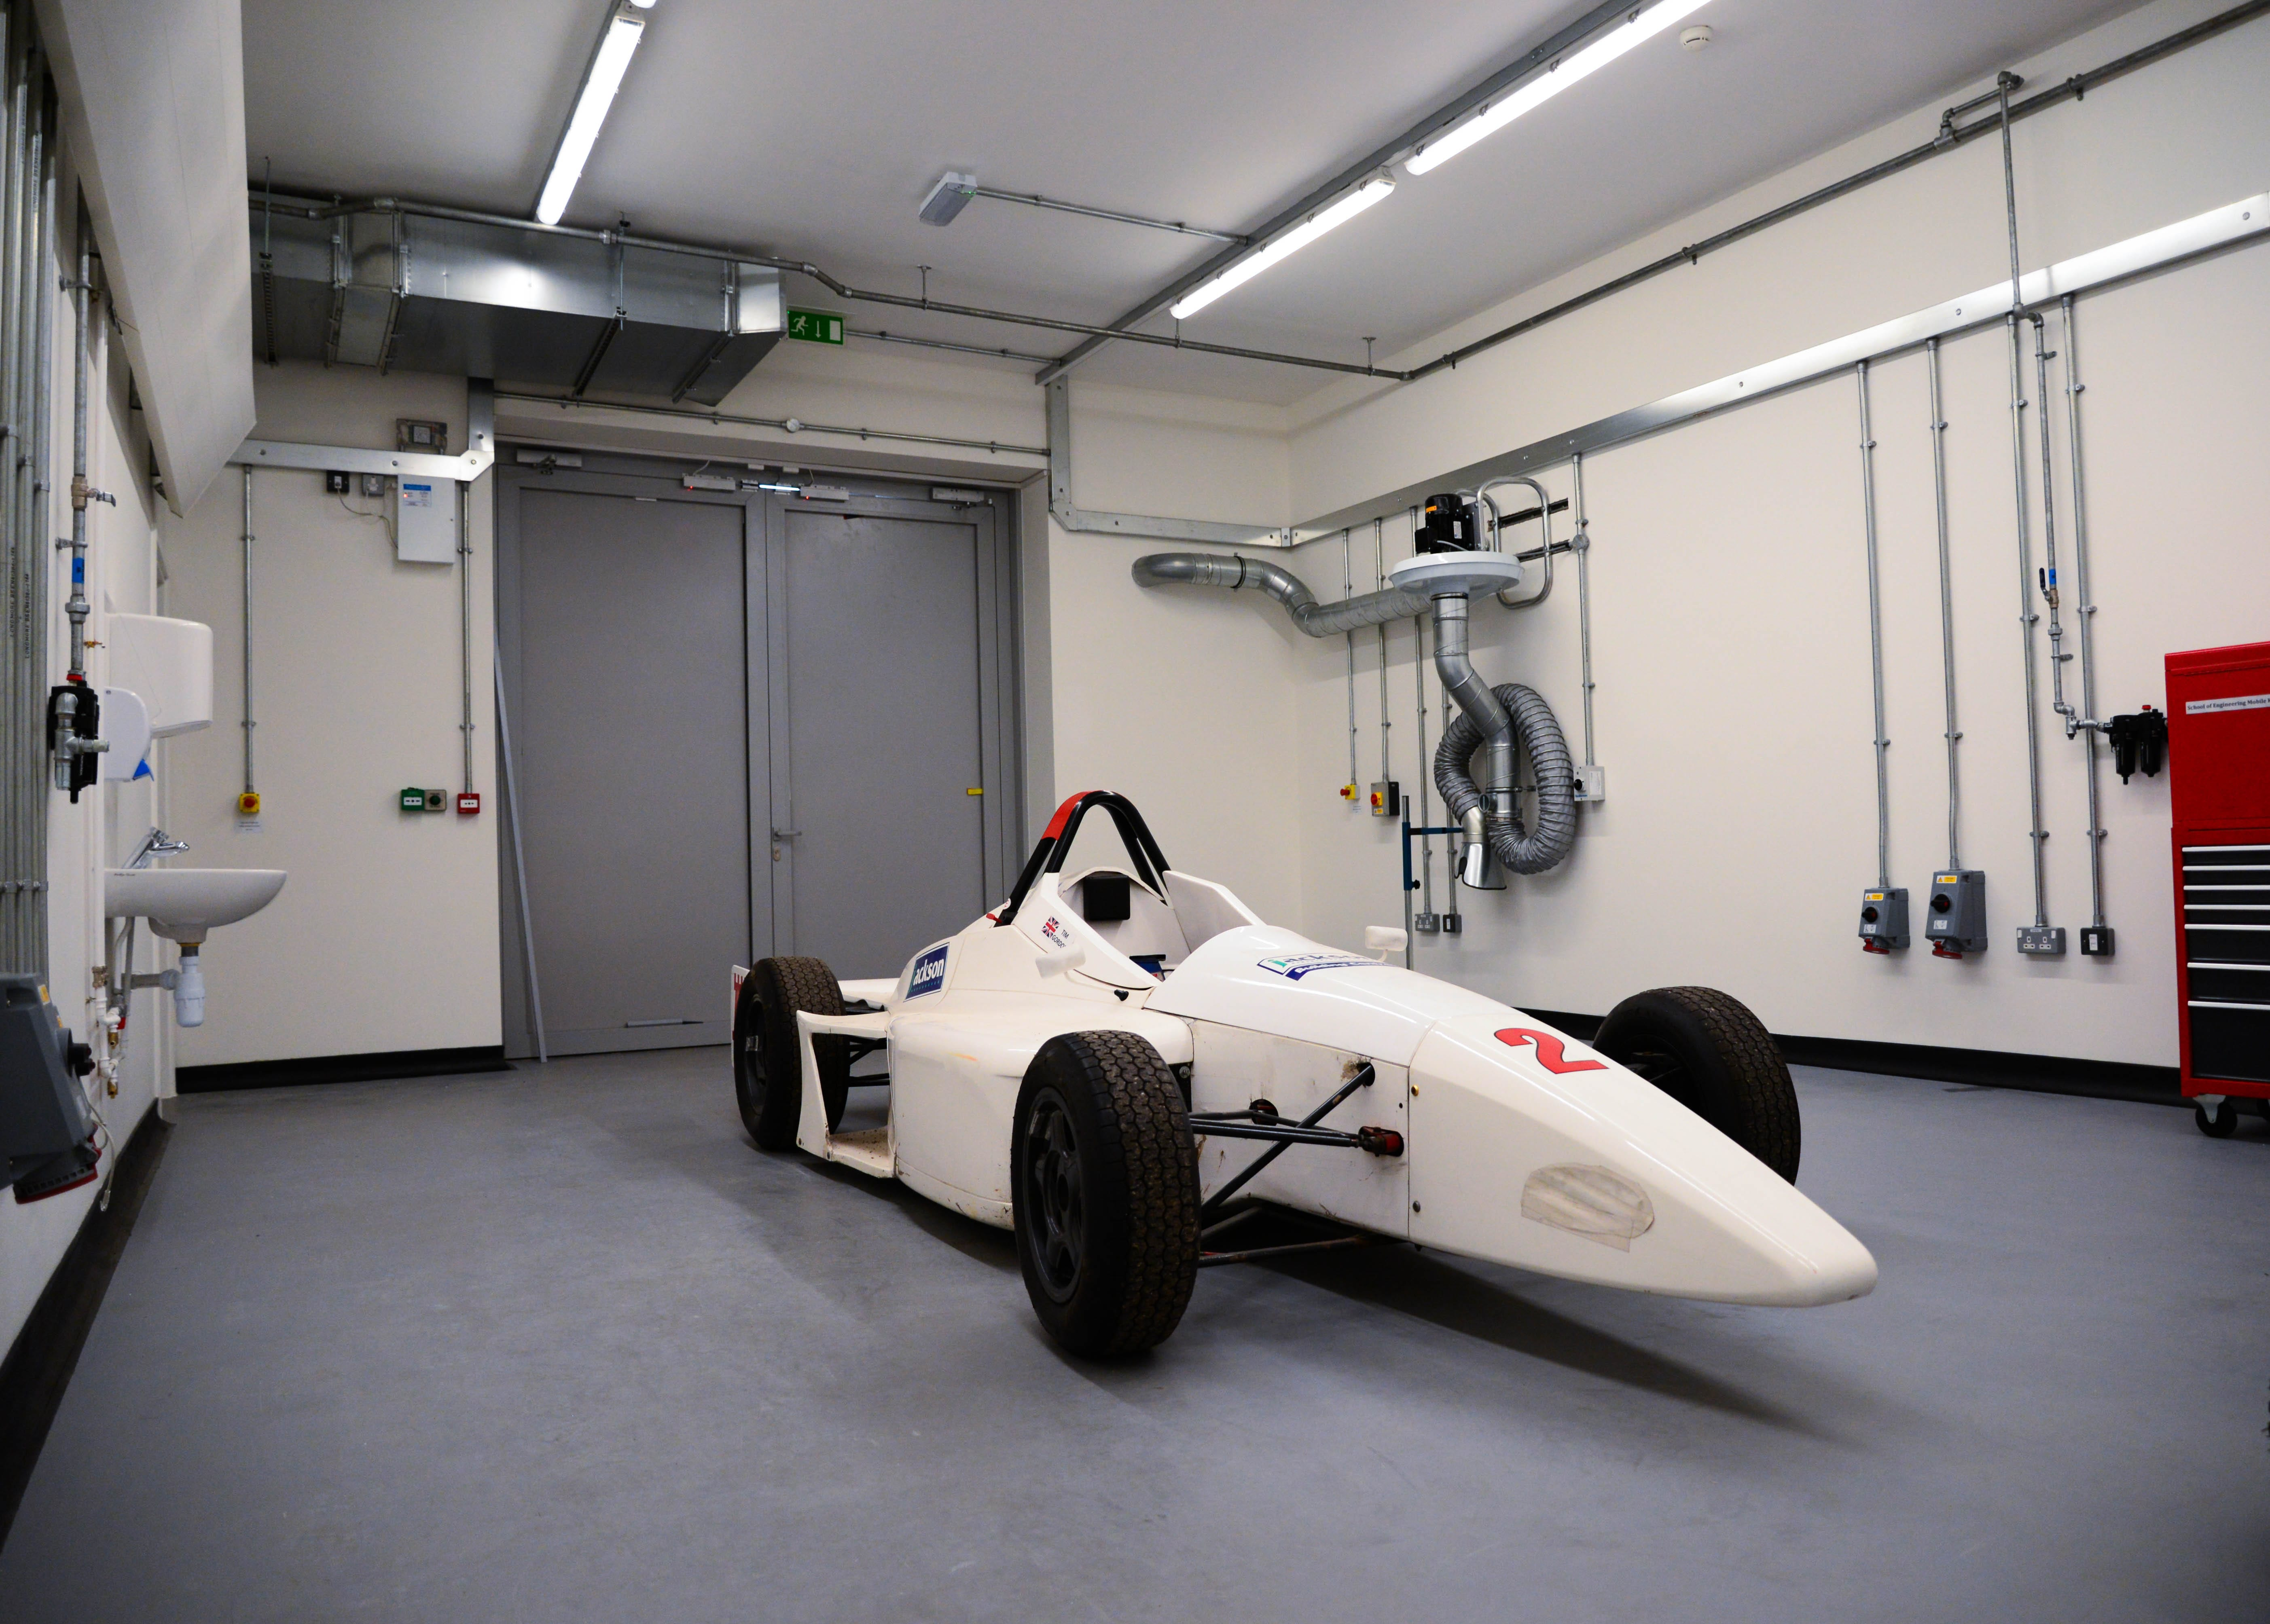 Image of a racing car